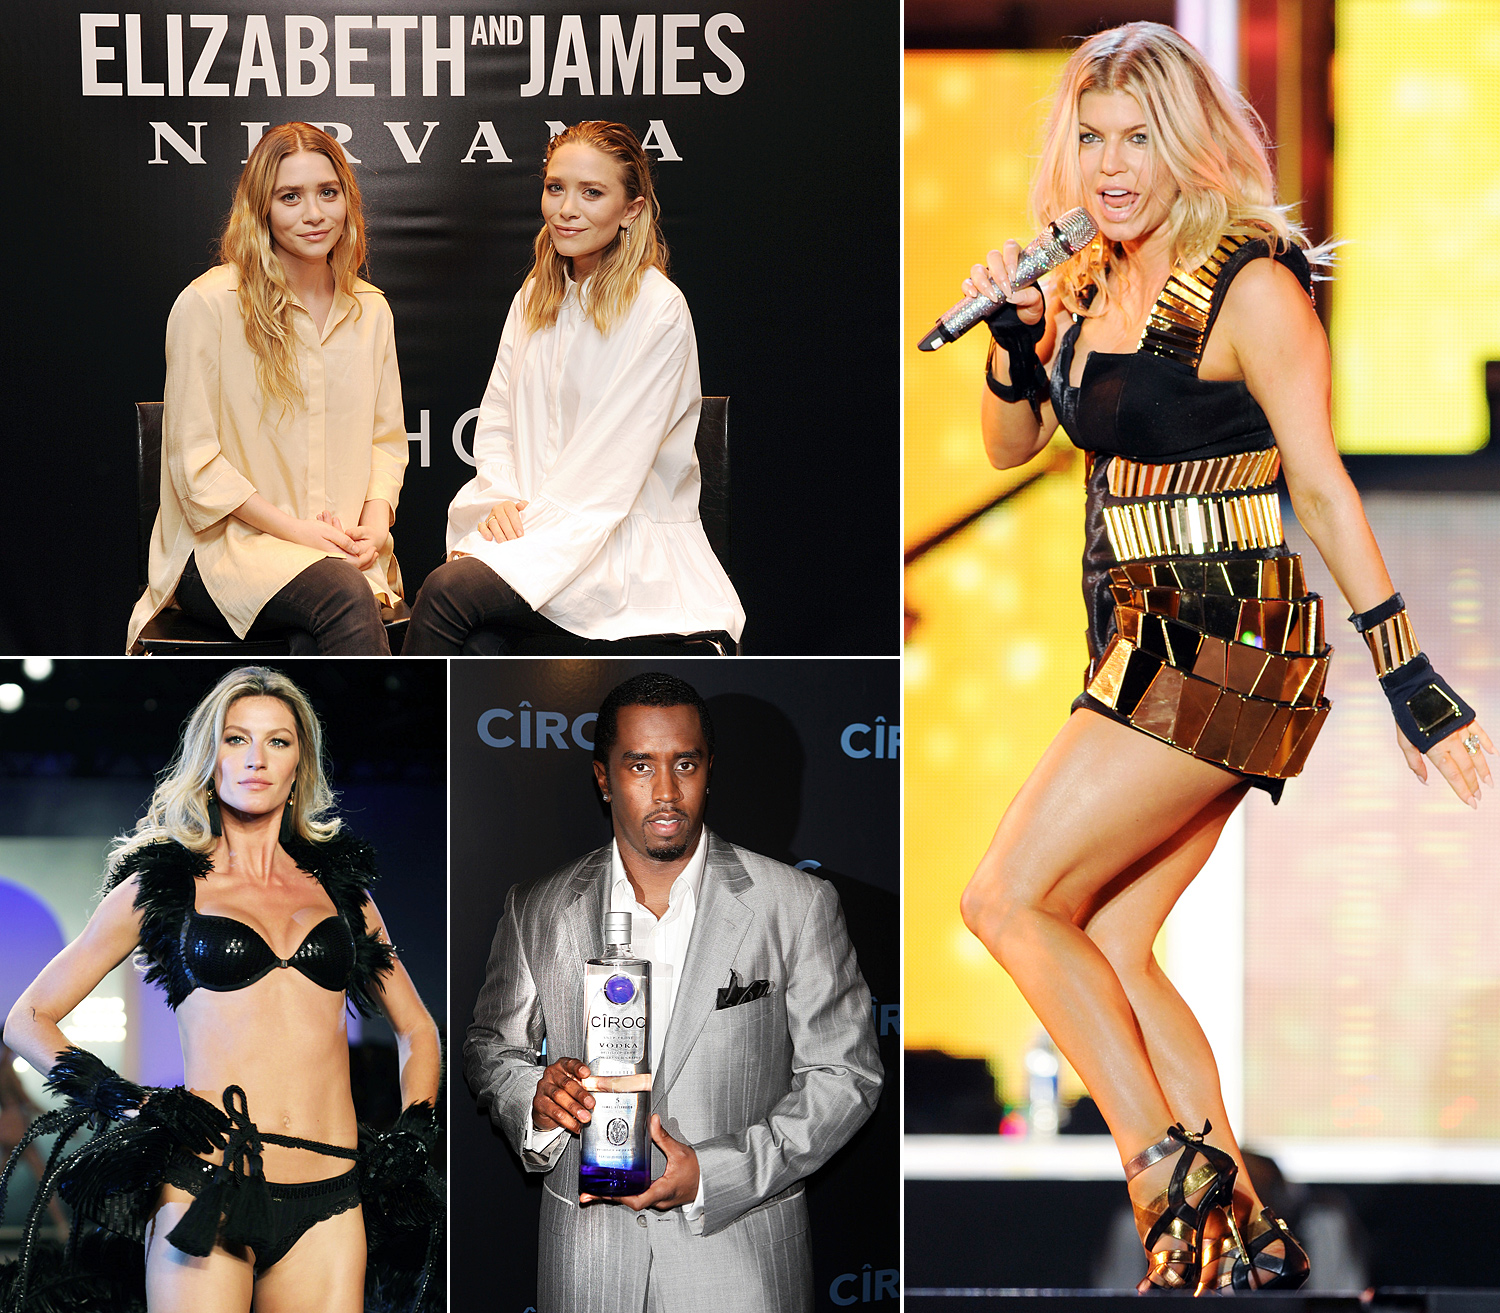 Who's the boss? From models and TV personalities to movie stars and talk show hosts, many celebrities have branched out from the medium that made them famous and started their own successful companies.